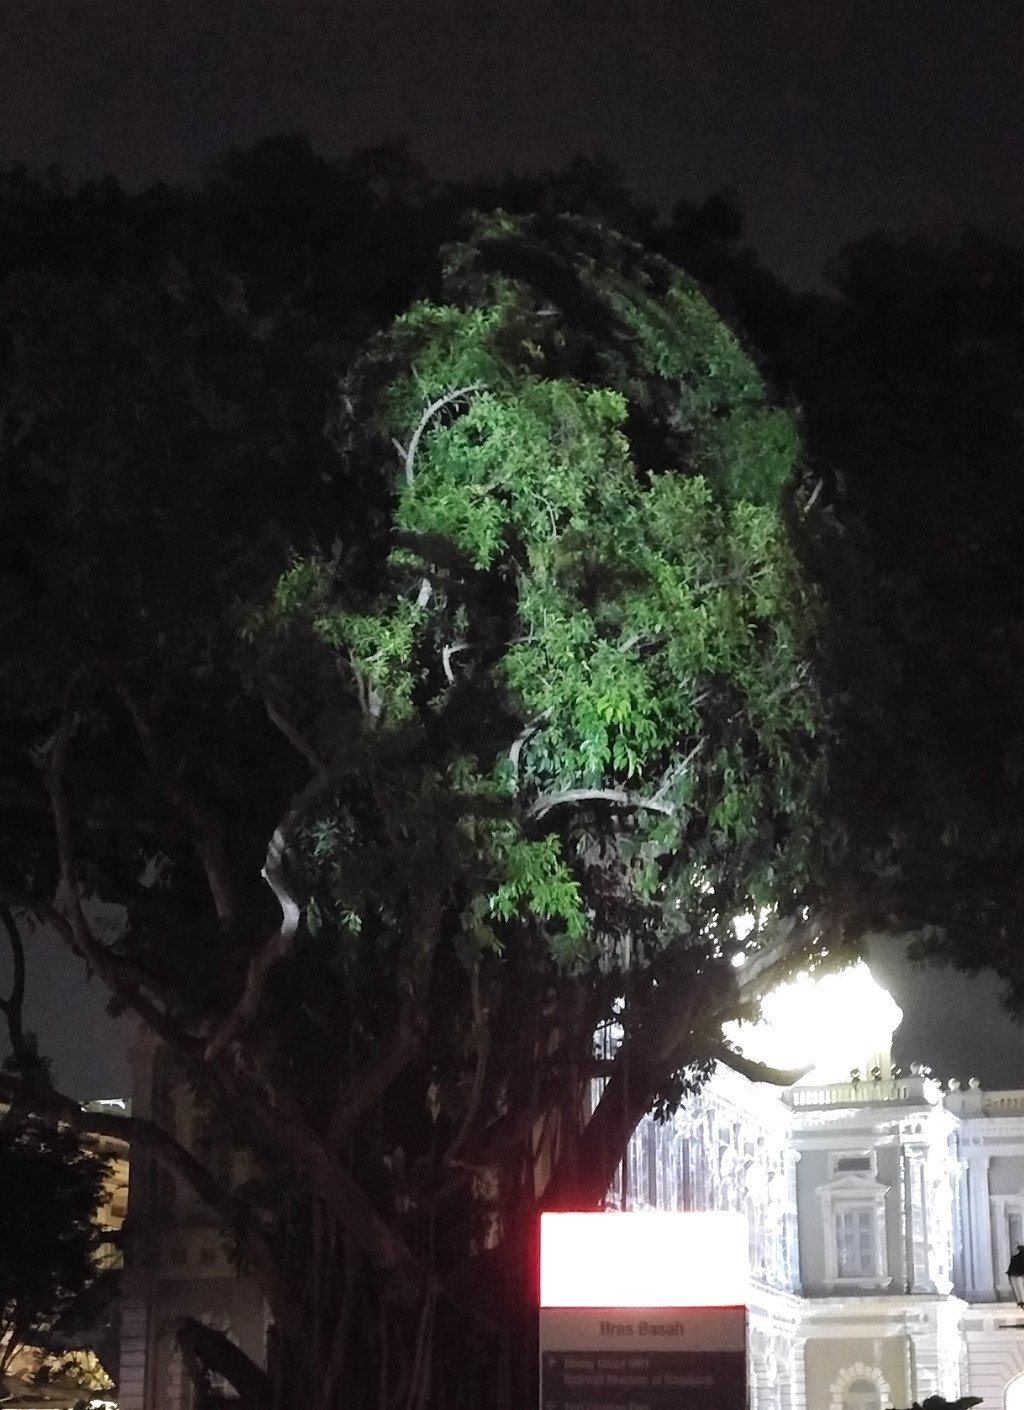 Singapore Night Festival 2017: The Tree that Blinked